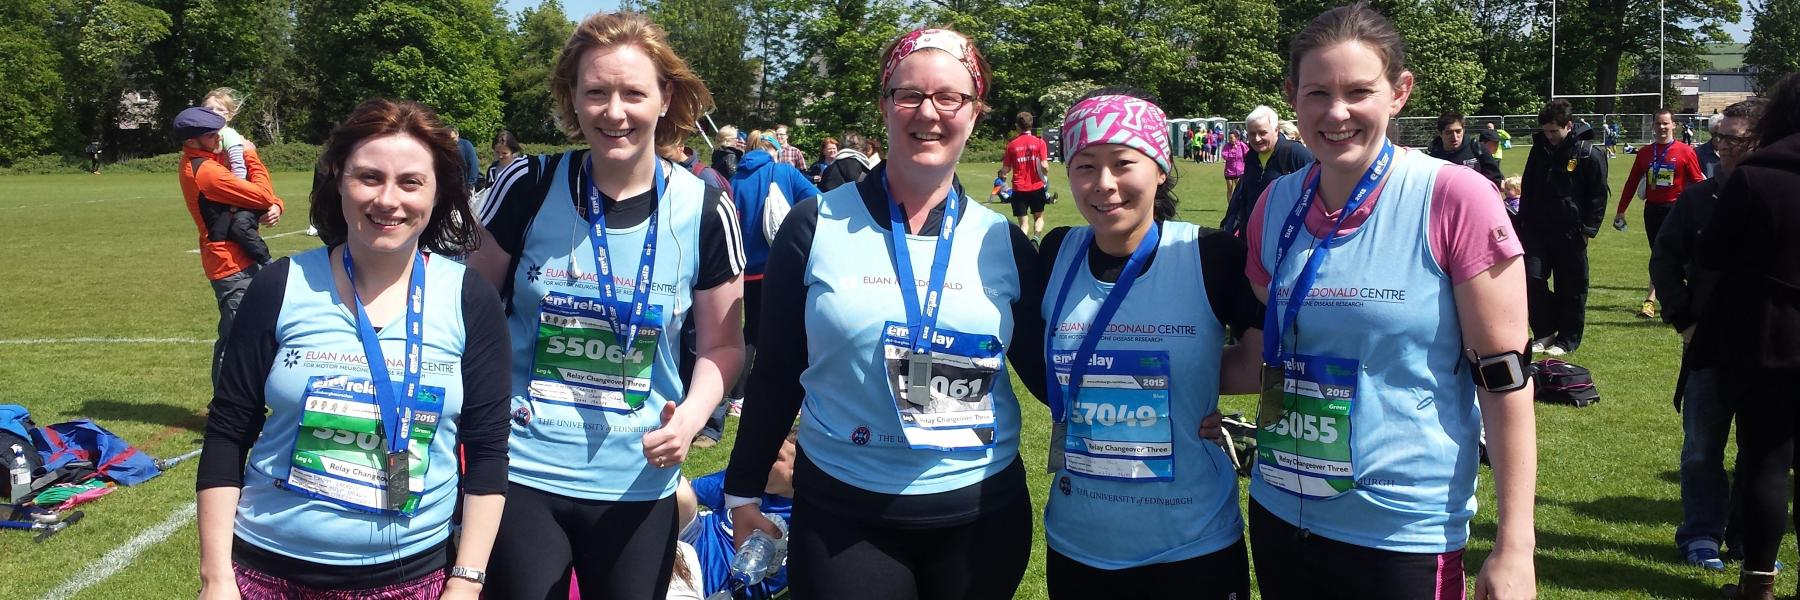 a group of runners wearing medals and Euan MacDonald Centre T-shirts, having just completed the Edinburgh Marathon relay